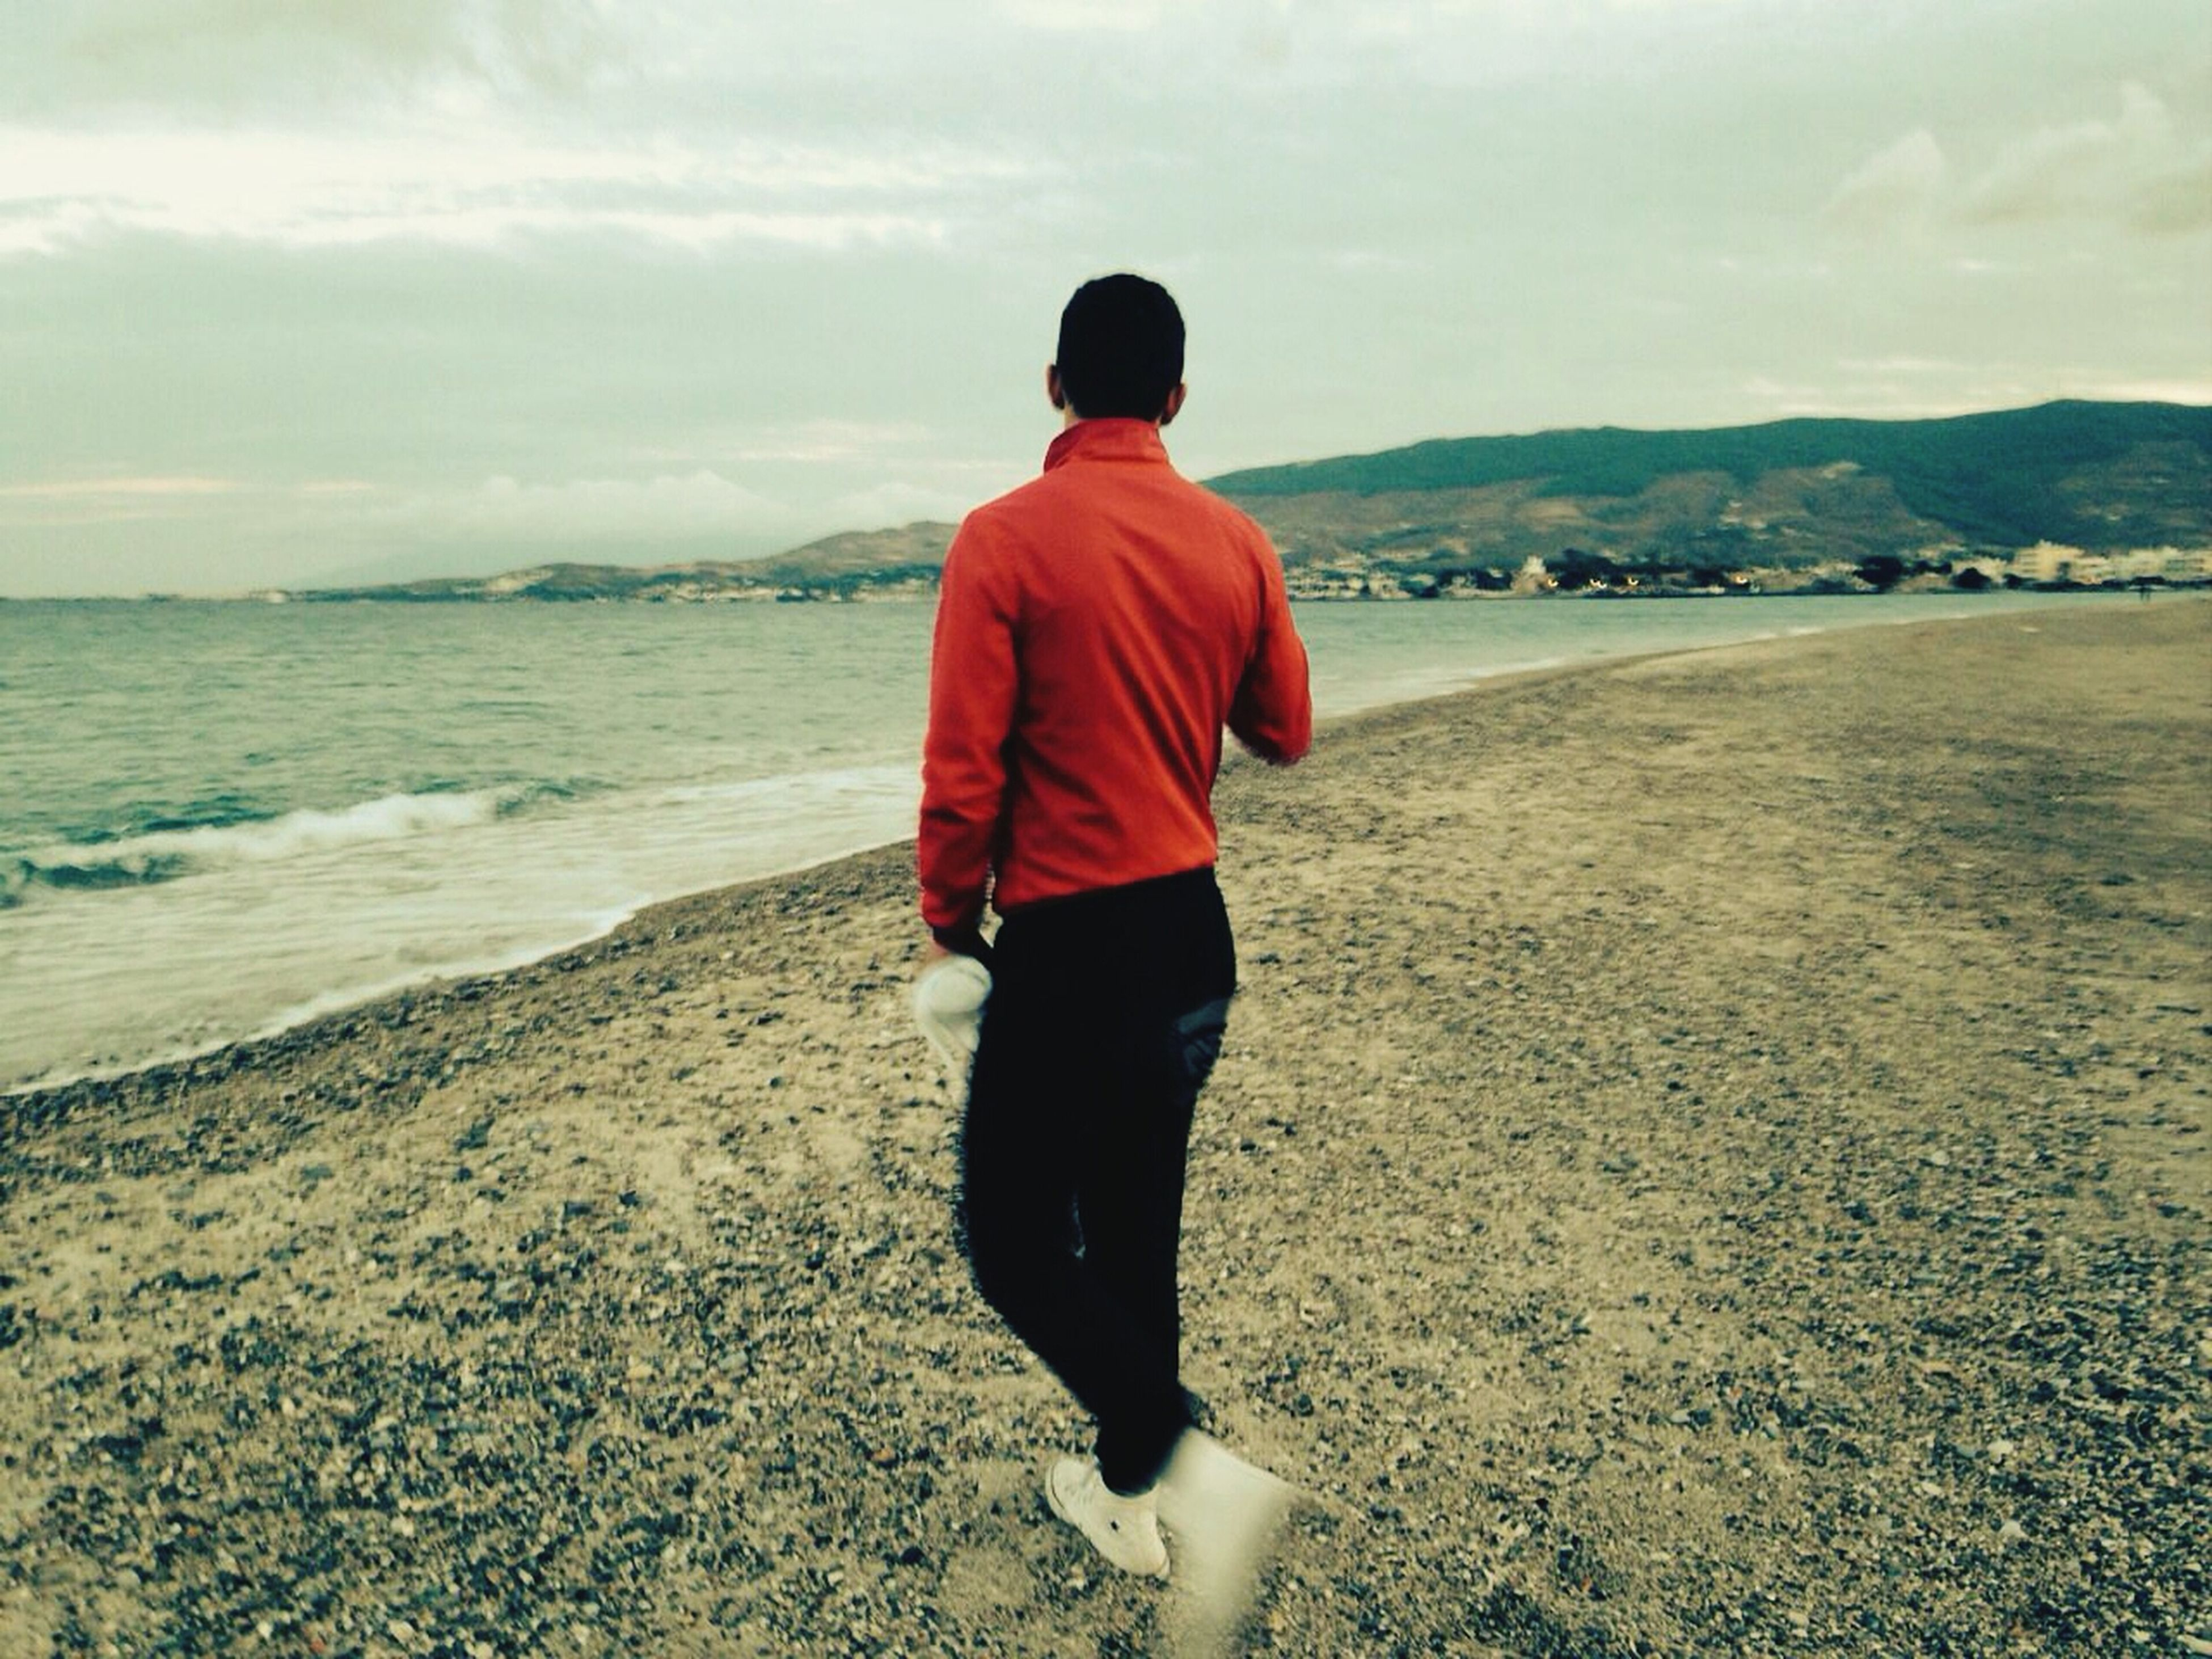 sky, beach, rear view, sea, tranquil scene, water, full length, tranquility, standing, scenics, beauty in nature, lifestyles, shore, leisure activity, cloud - sky, nature, casual clothing, sand